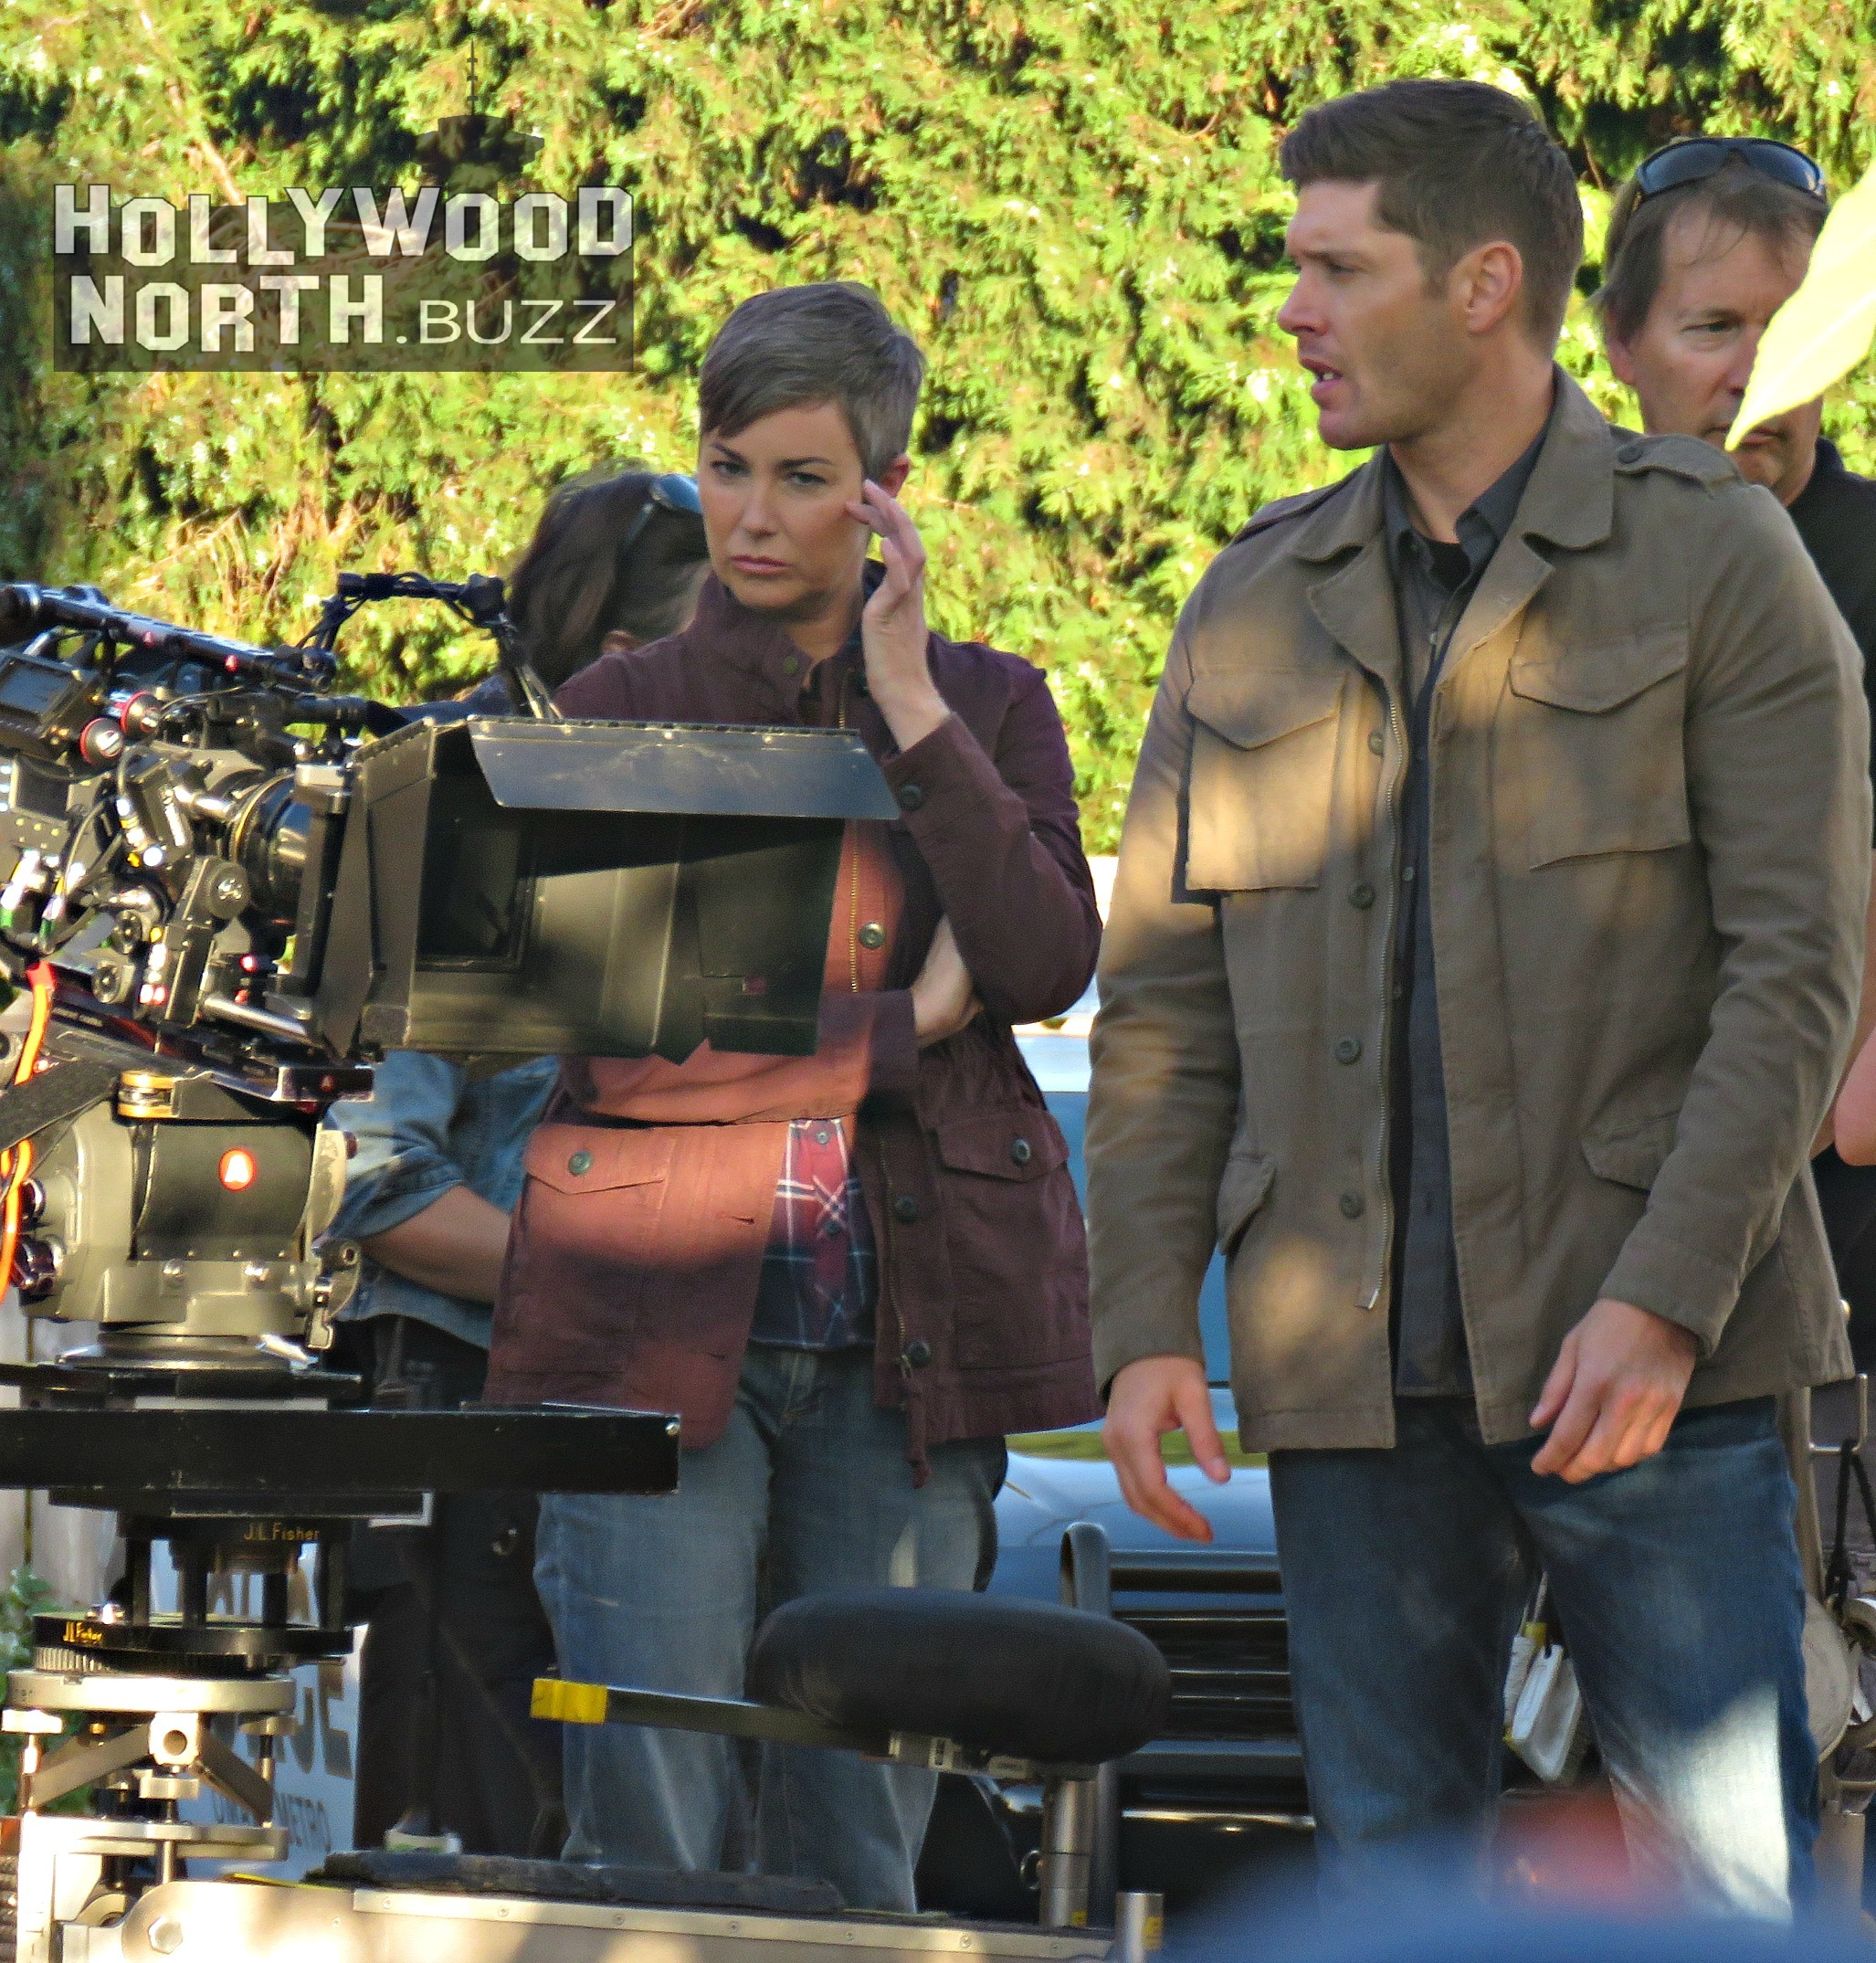 http://yvrshoots.com/wp-content/uploads/2017/08/a-spn-in-sptn4-2.jpg